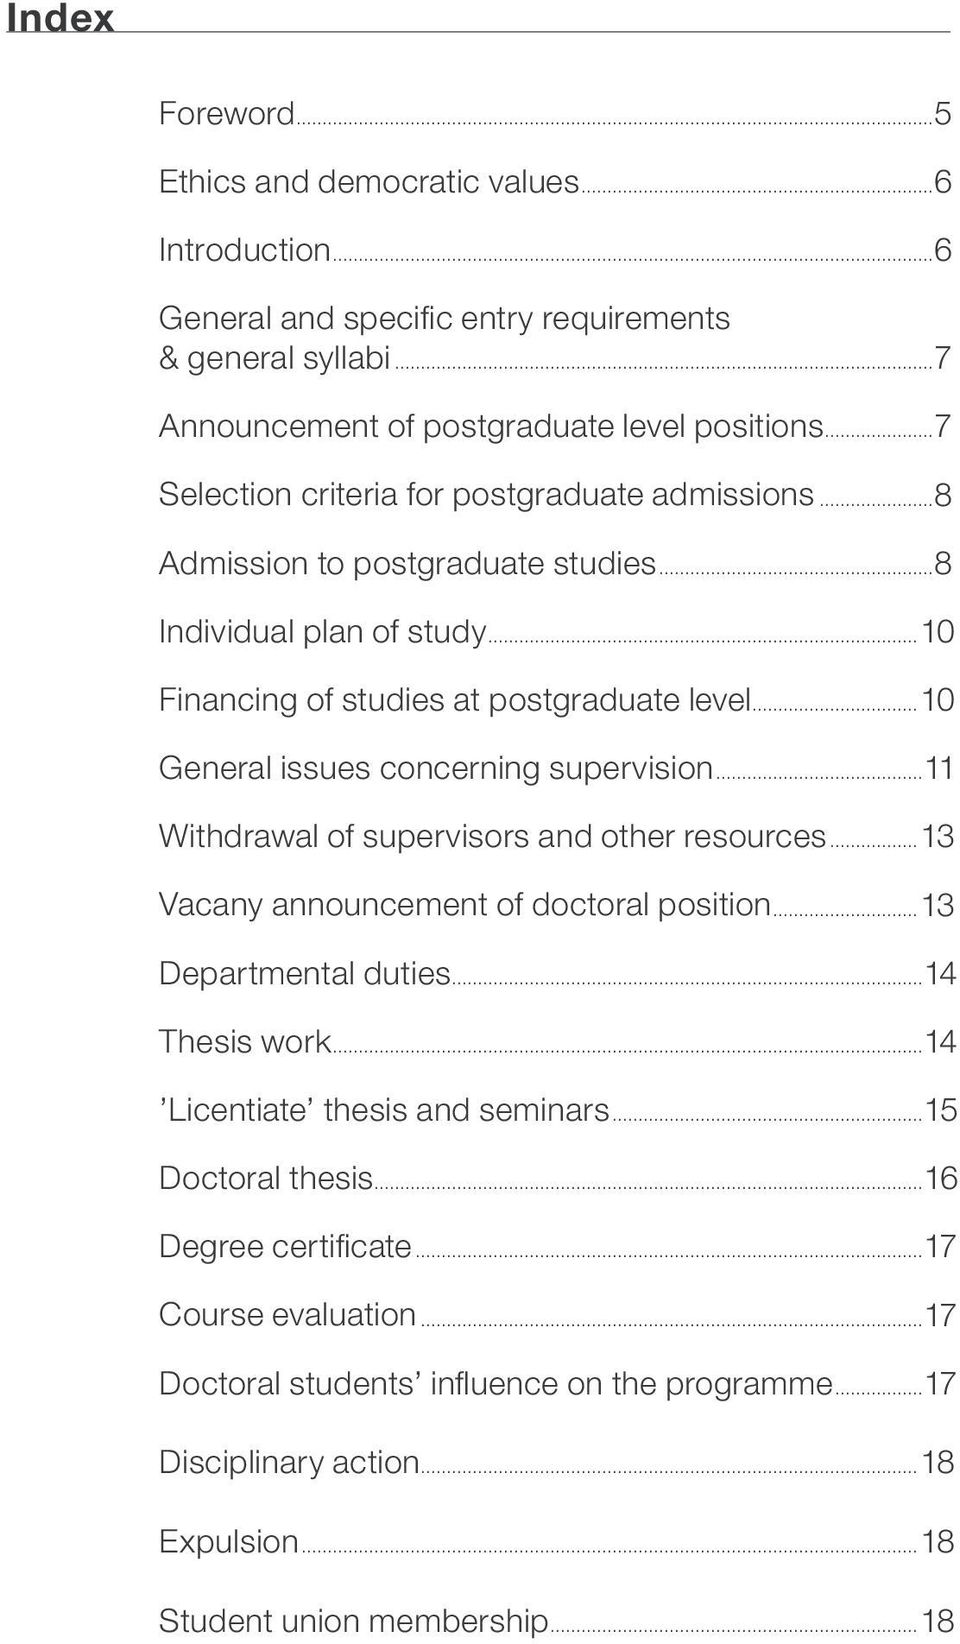 ..10 General issues concerning supervision...11 Withdrawal of supervisors and other resources...13 Vacany announcement of doctoral position...13 Departmental duties...14 Thesis work.